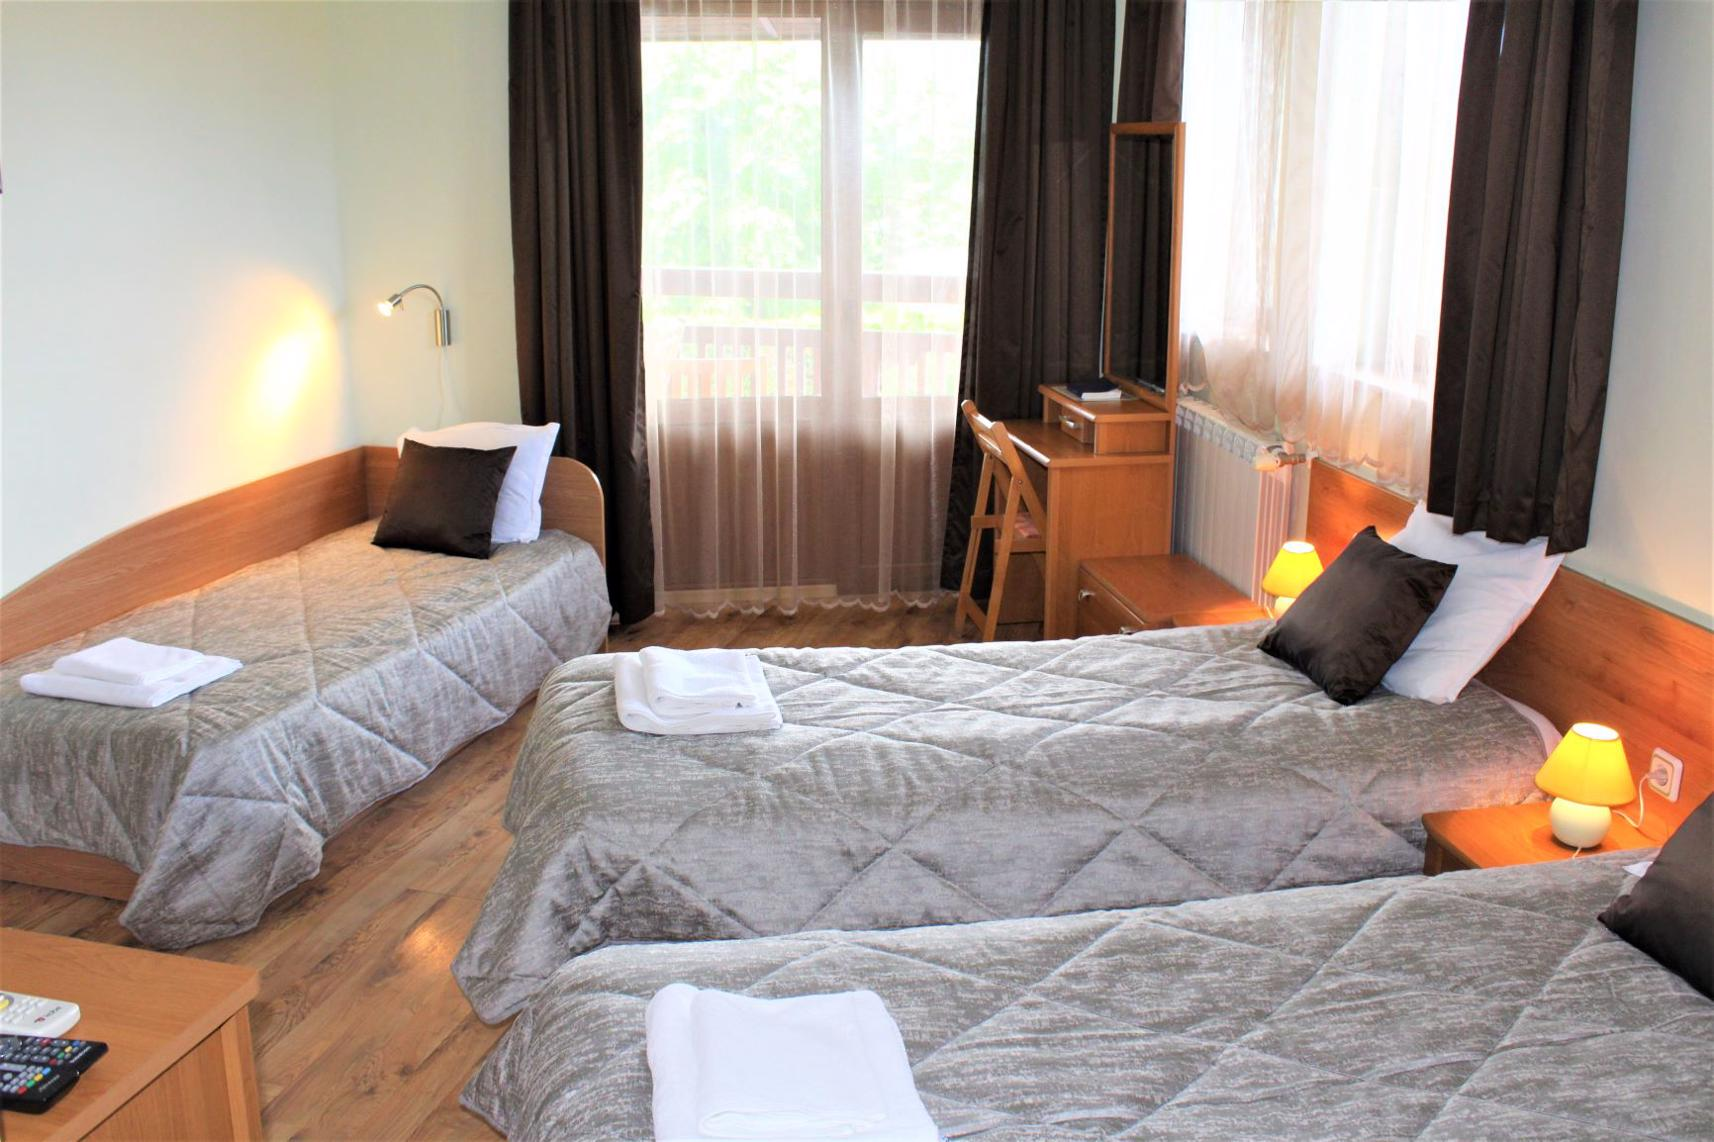 Room with 3 beds